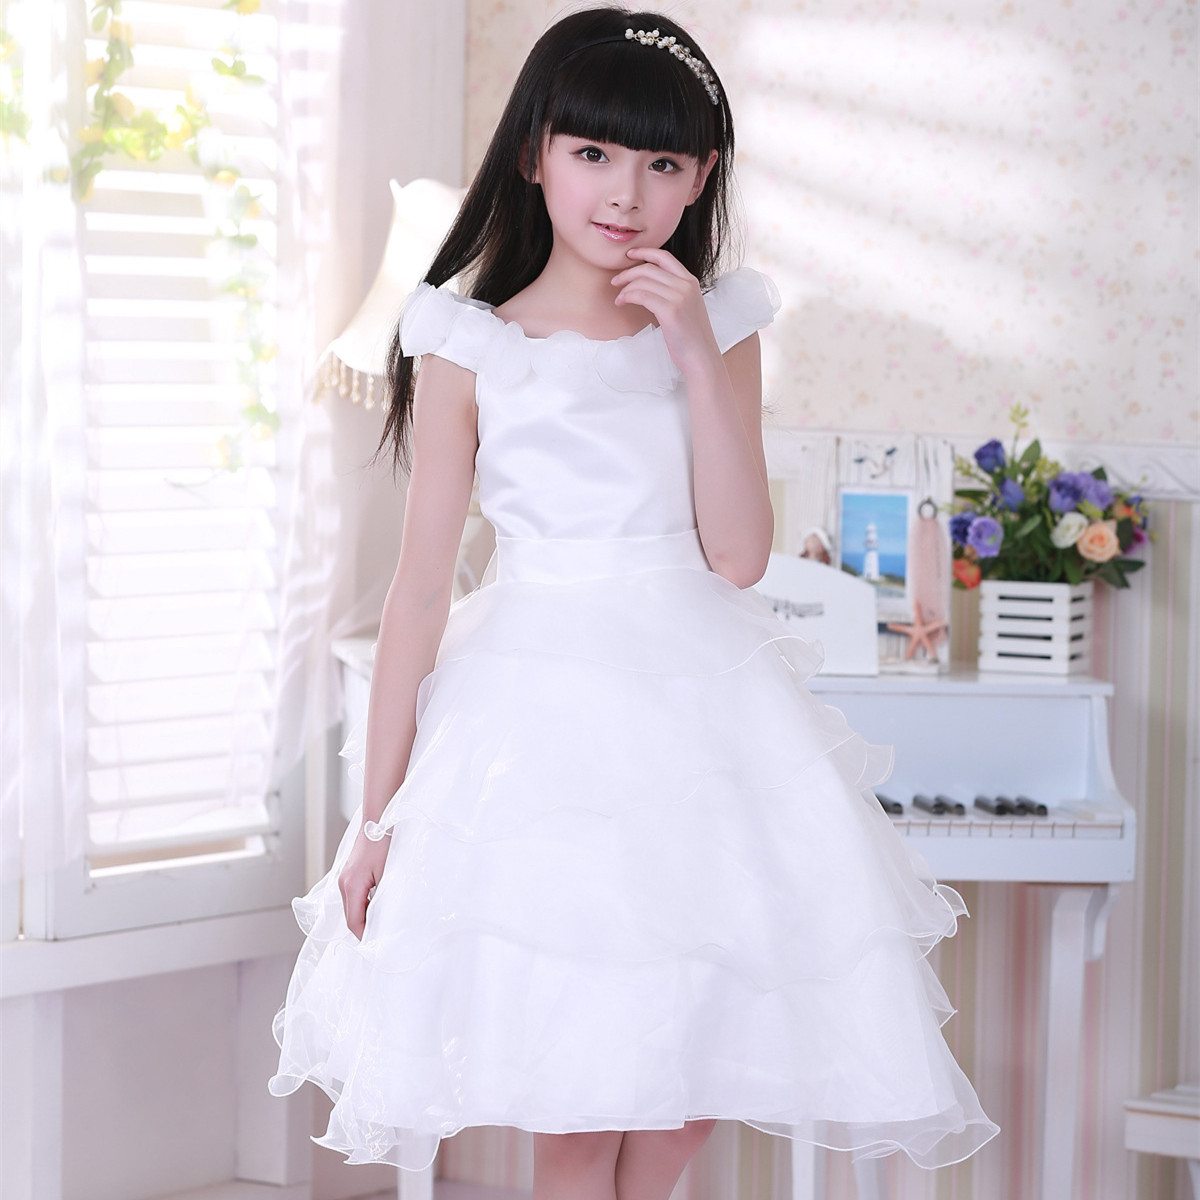 2017 Party Dresses For Girls 12 Years Girl White Flower Wedding Elegant Formal Vestidos Party Wear Child Clothing SKD001478 girls champagne short front long back flower girl dress for wedding trailing formal party vestidos girls clothes 2017 skf154024